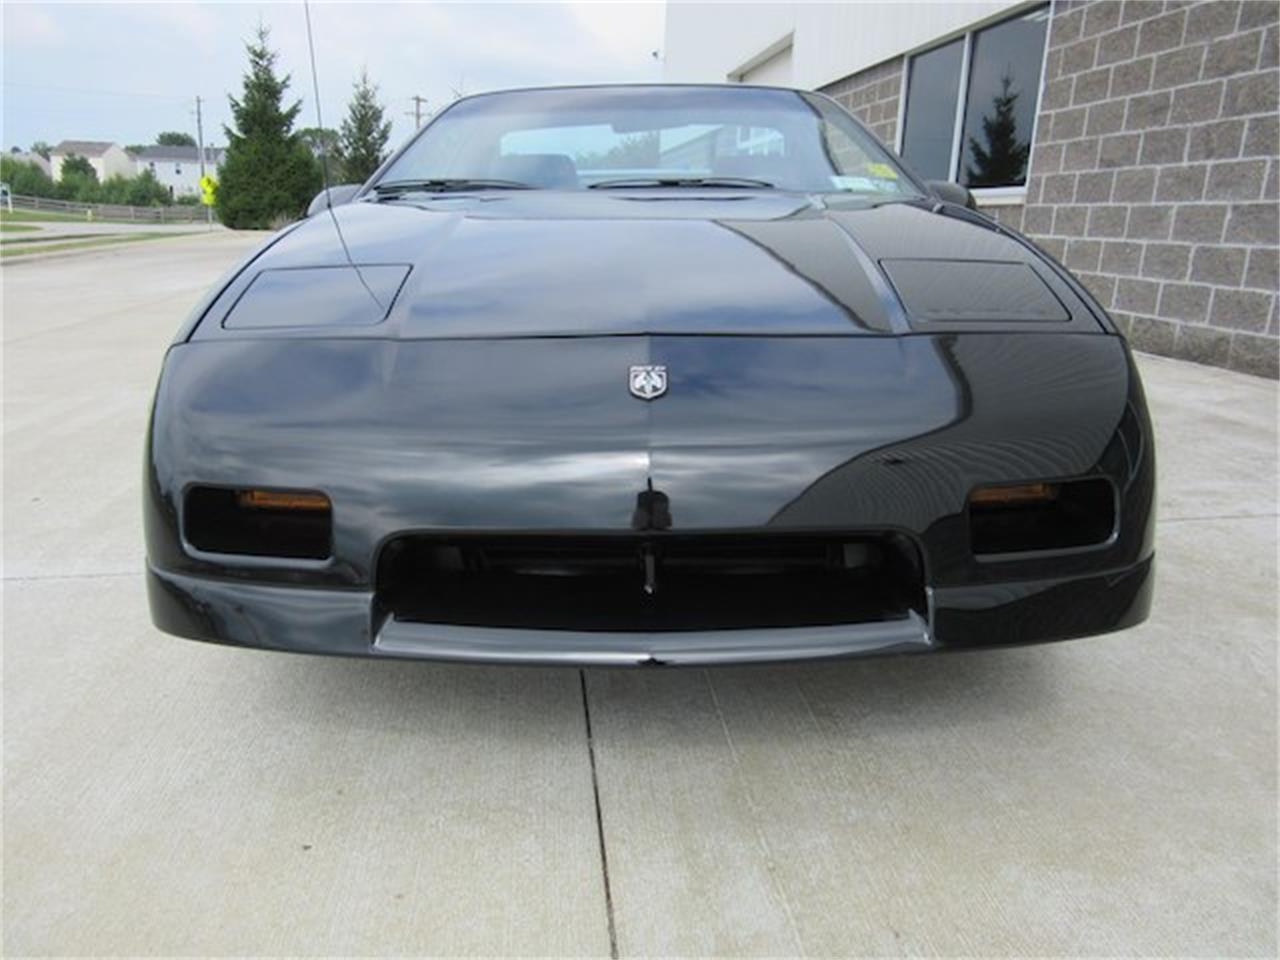 Large Picture of 1988 Fiero located in Indiana Offered by Ray Skillman Classic Cars - NVQQ